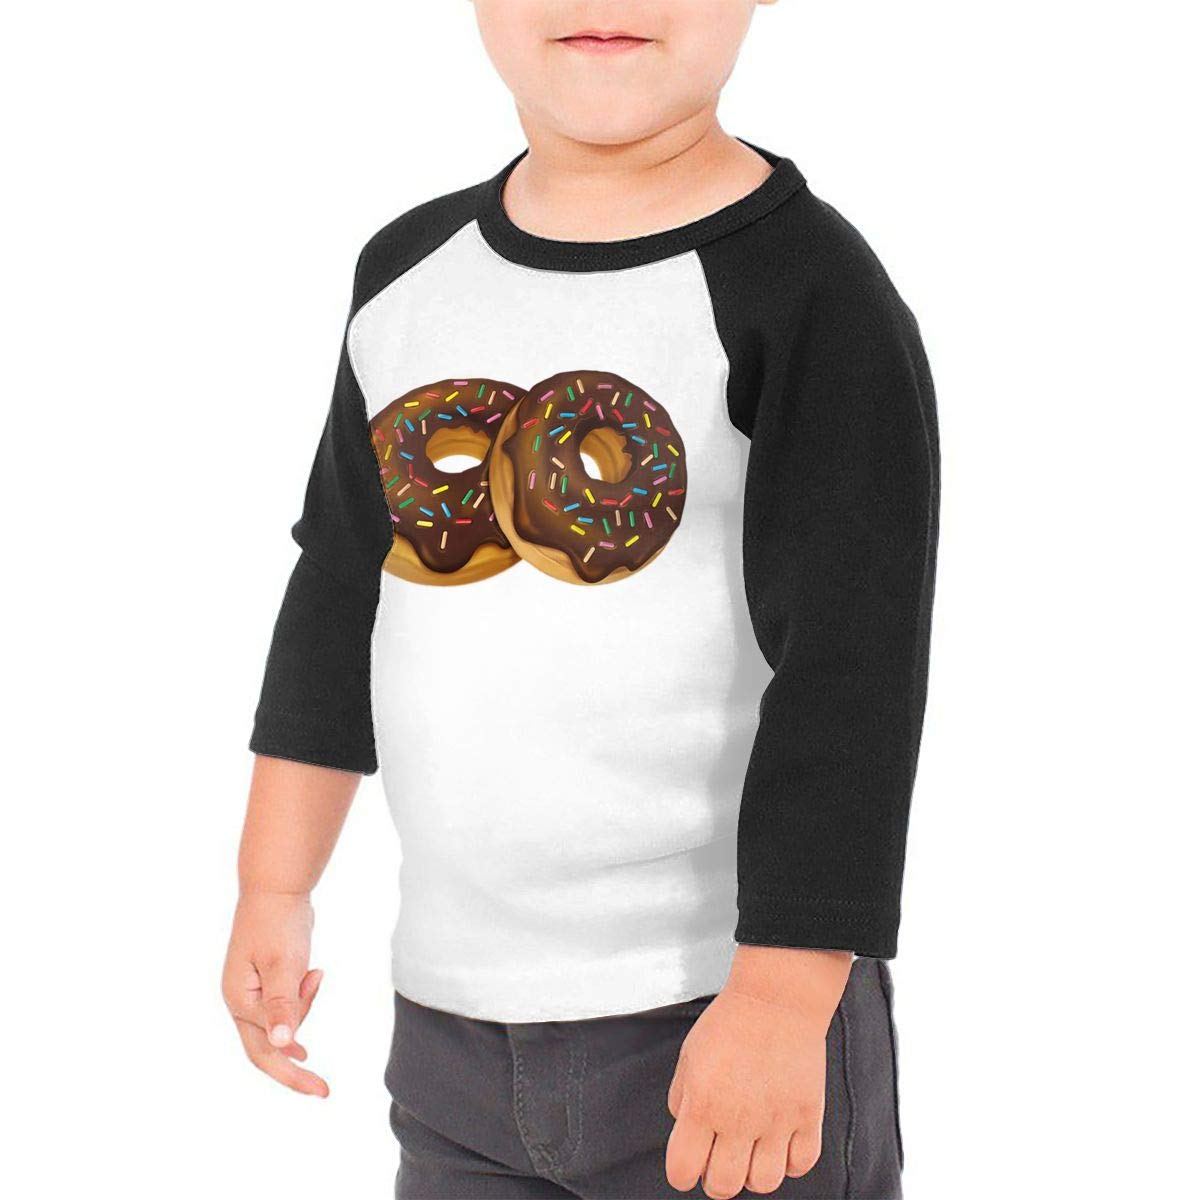 Delicious Donuts Chocolate Toping Unisex Toddler Baseball Jersey Contrast 3//4 Sleeves Tee